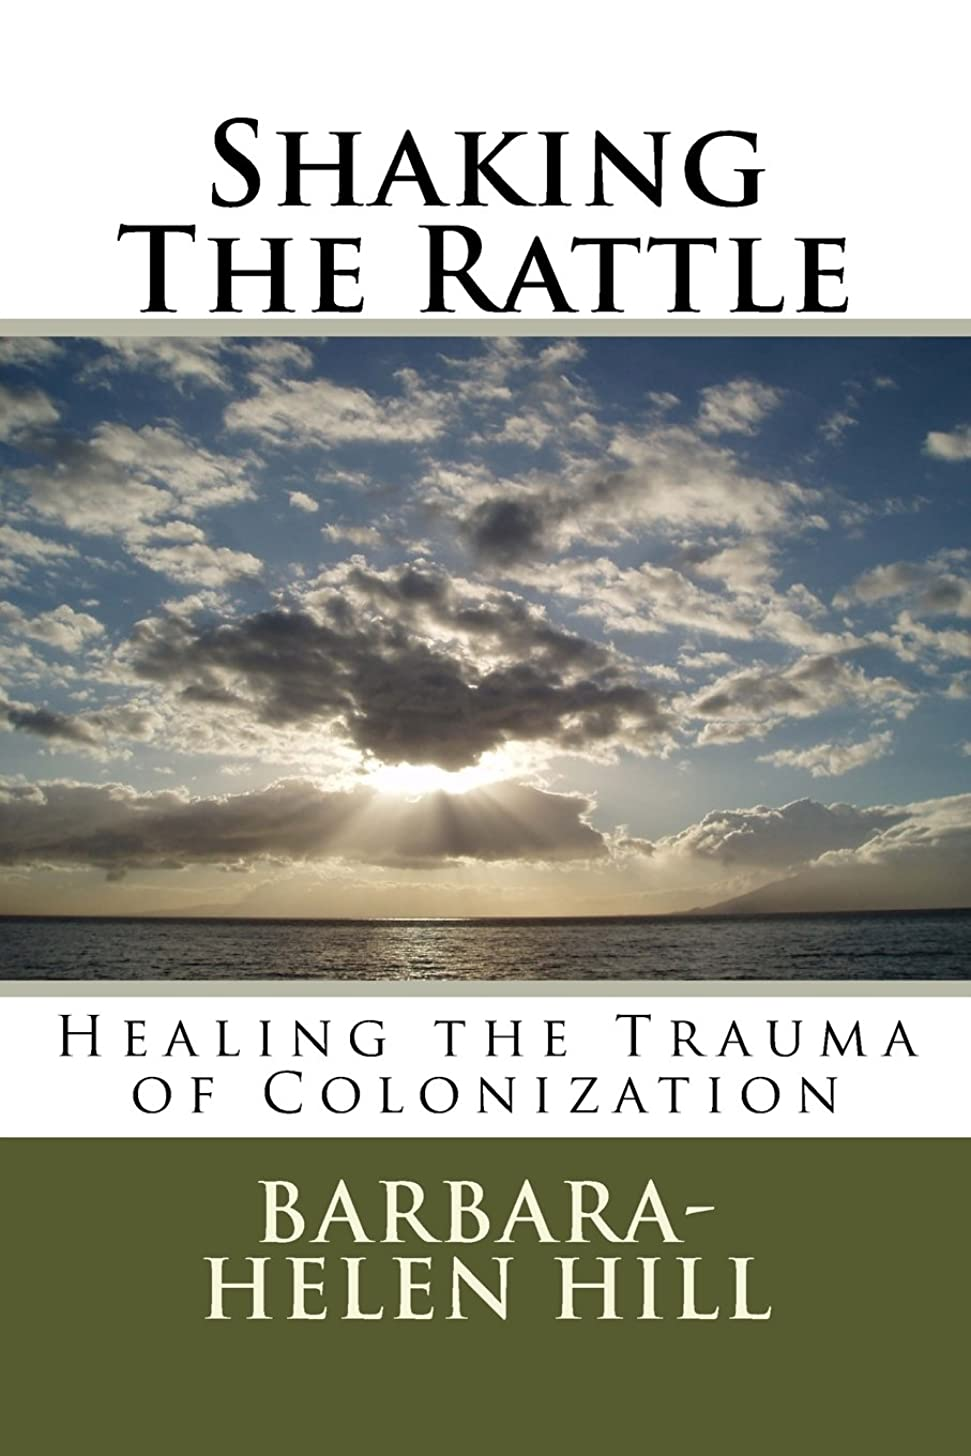 Shaking the Rattle; Healing the Trauma of Colonization